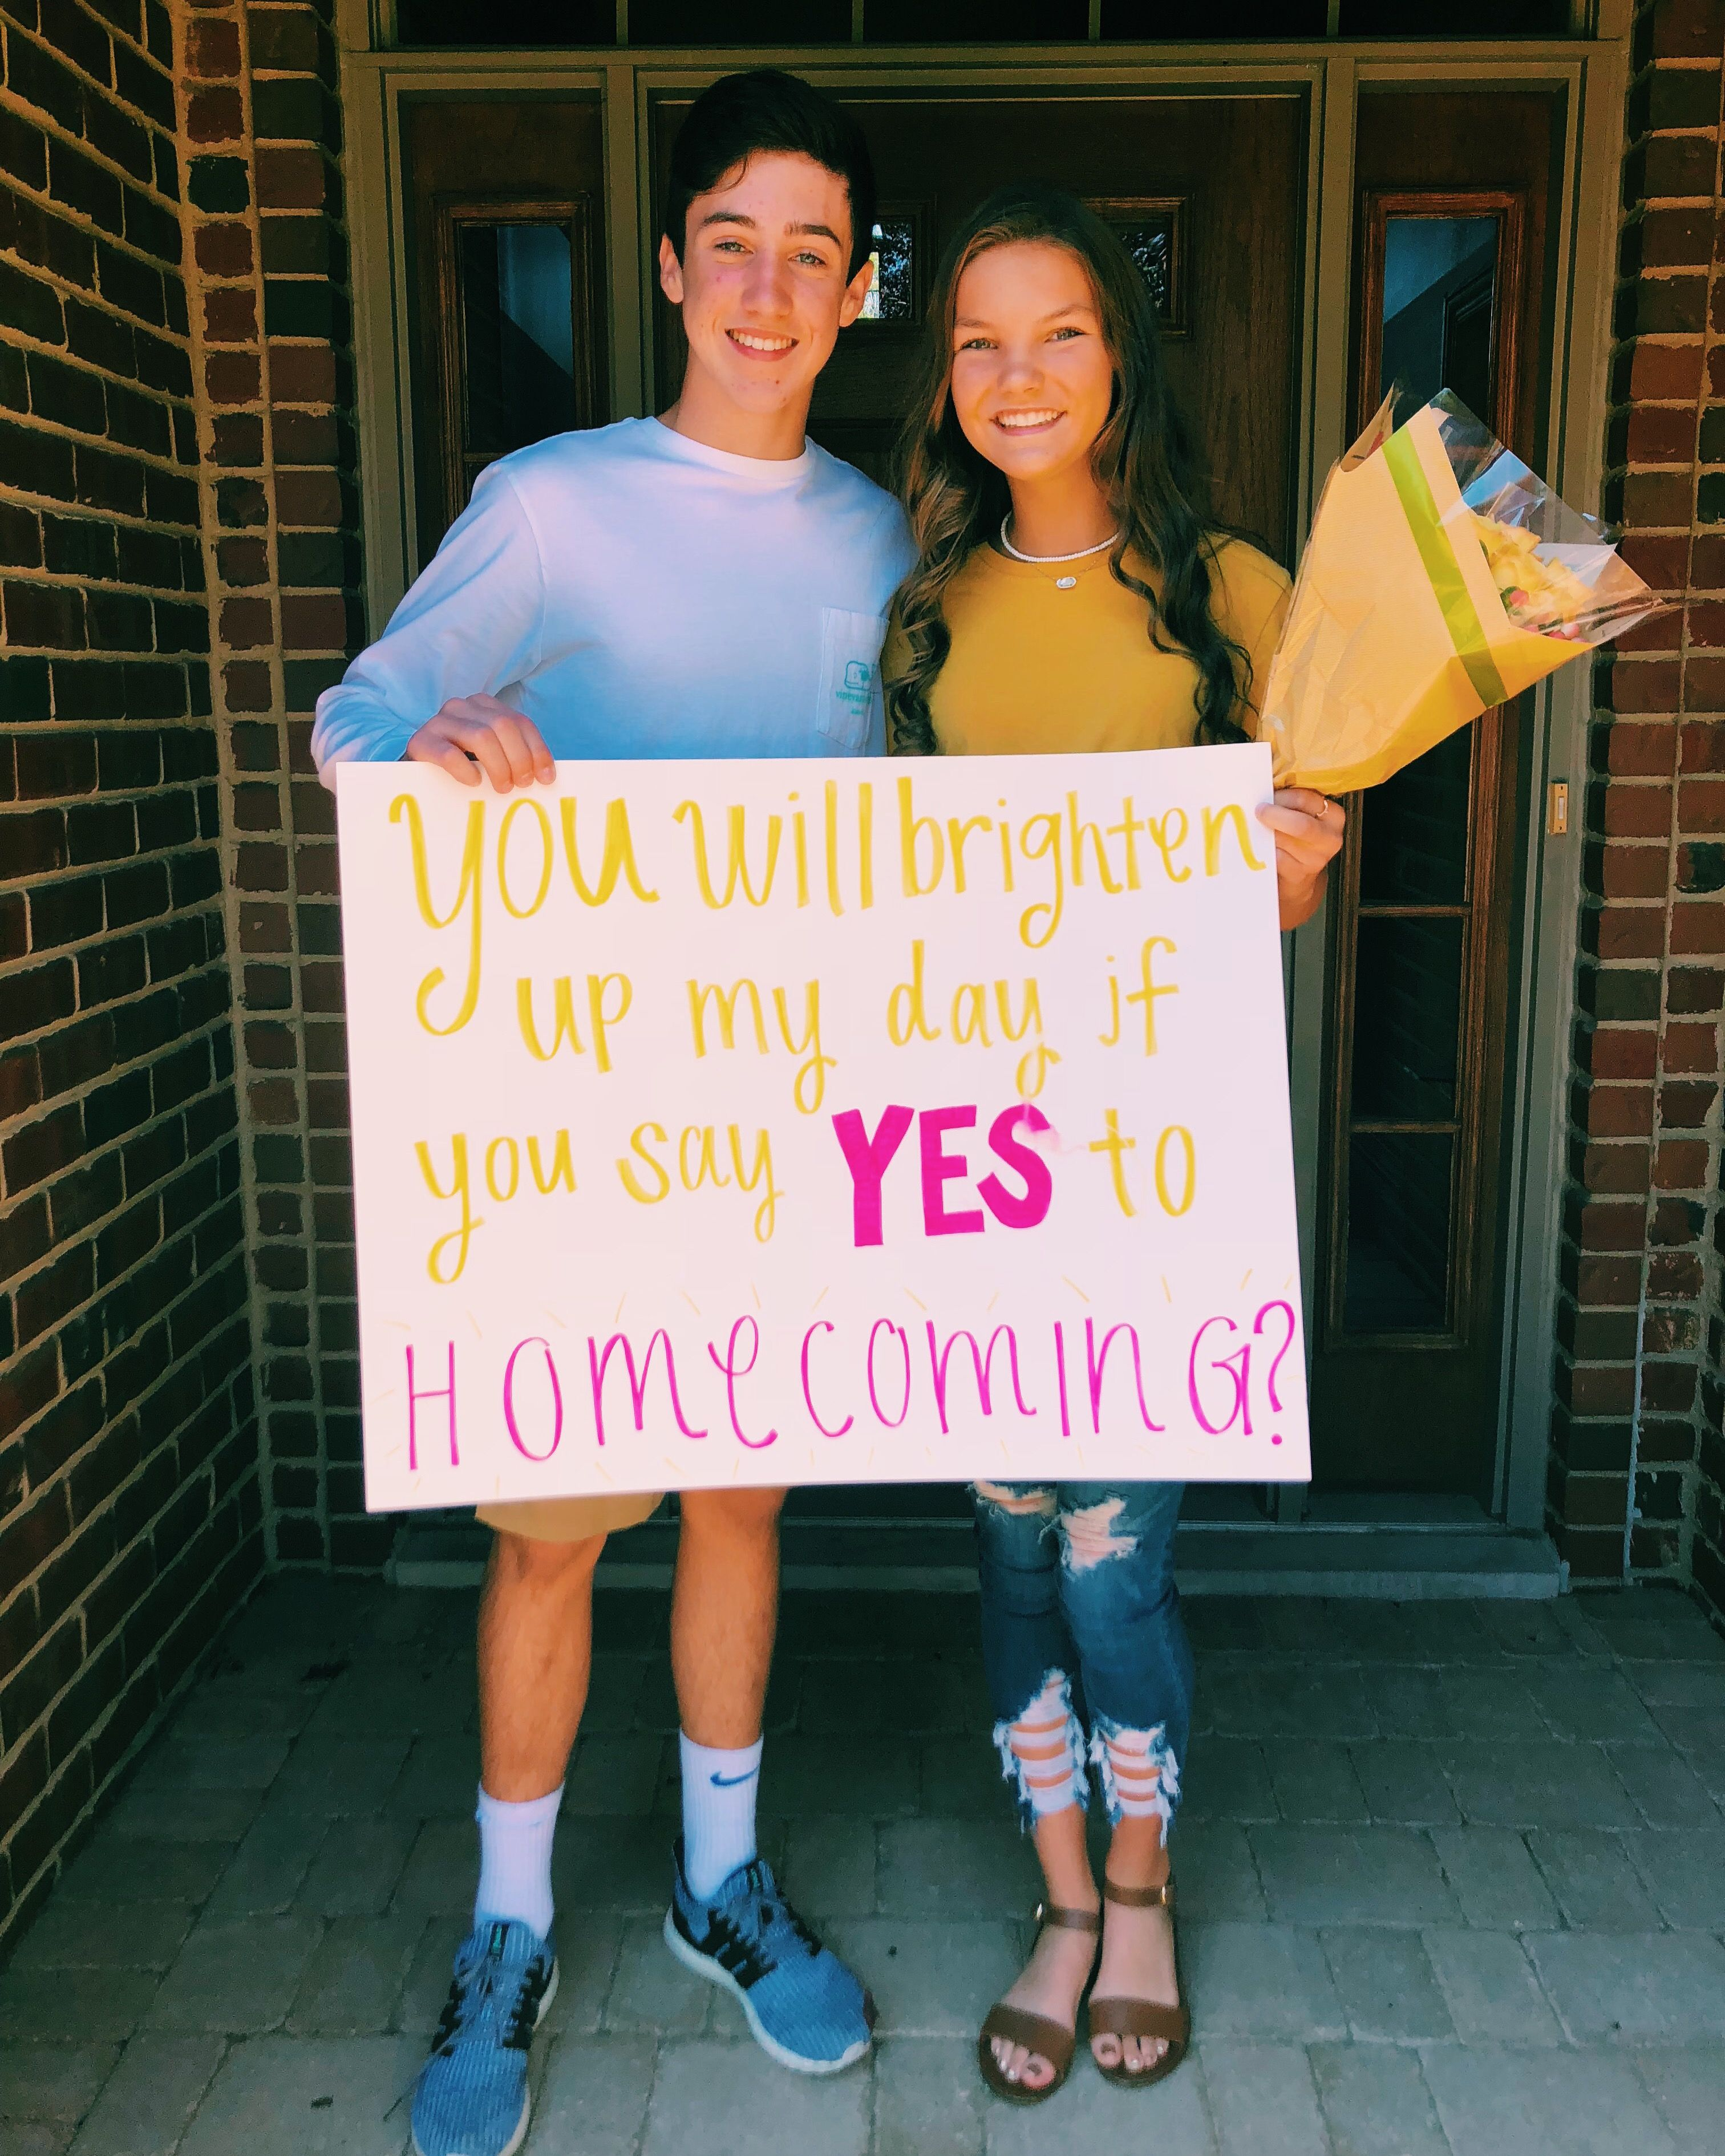 Cute hoco proposal!!!